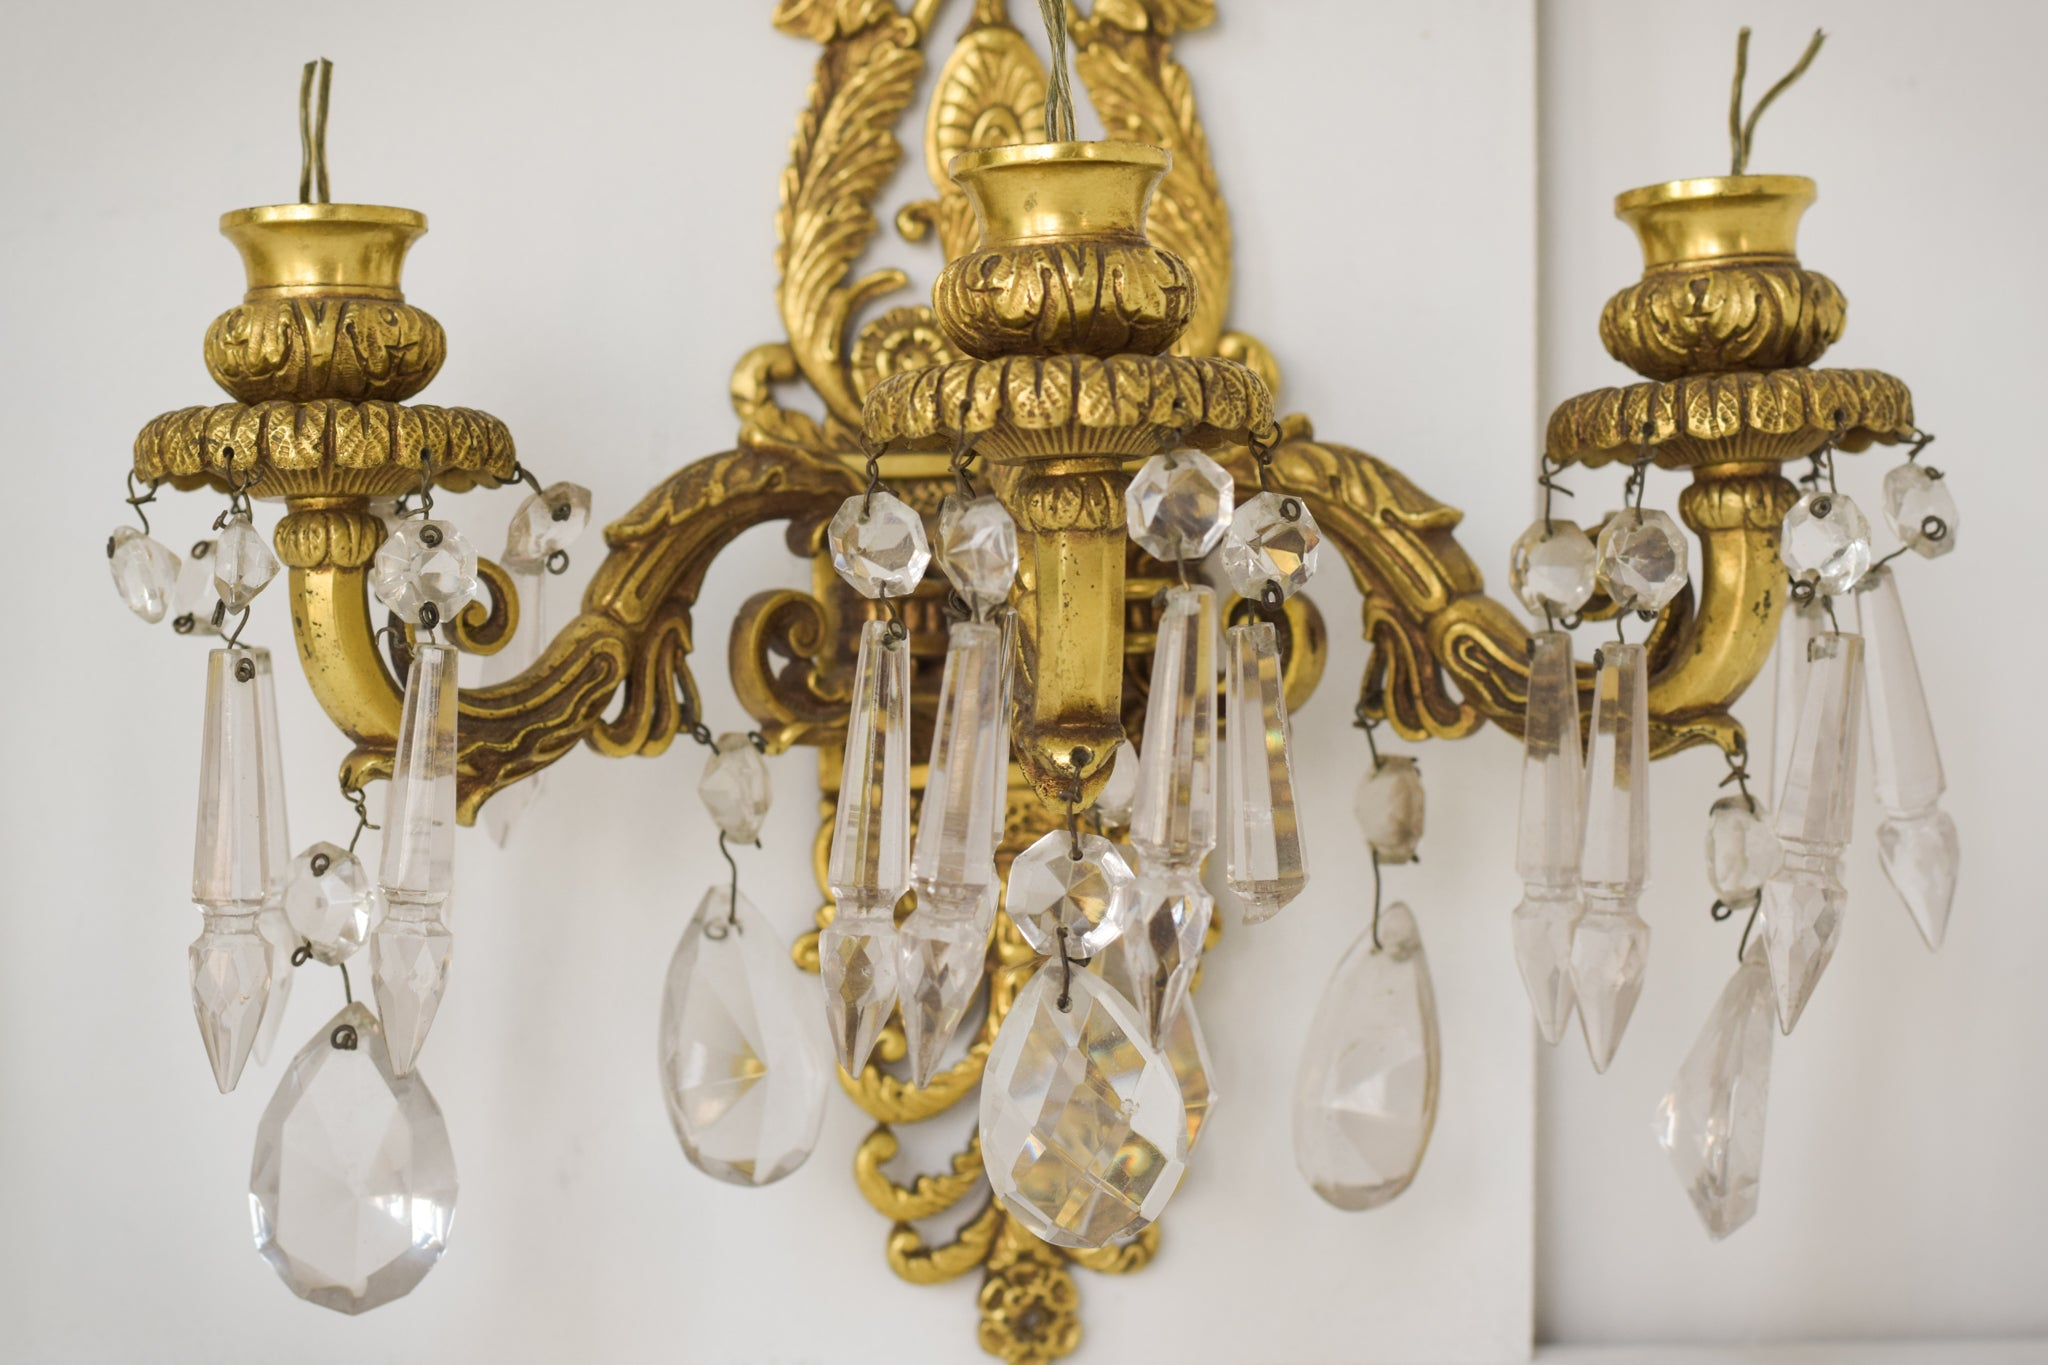 Two Golden Wall-Mounted Chandeliers_Detail